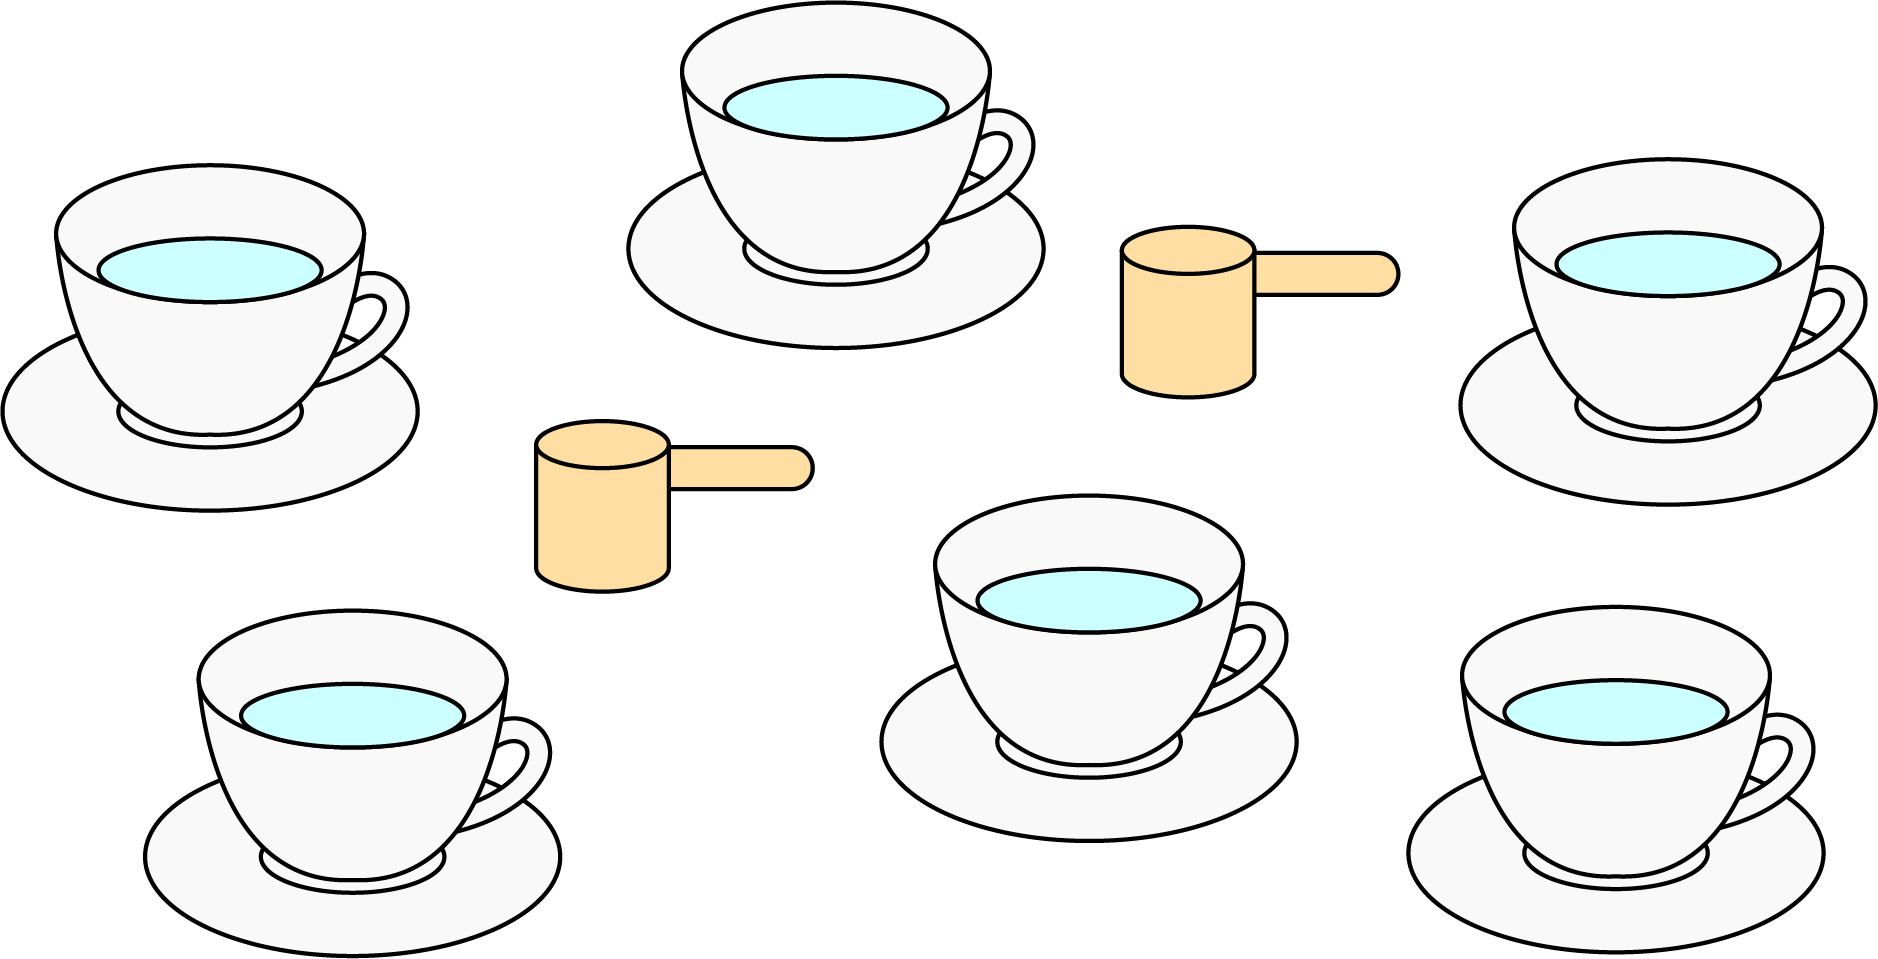 """A diagram which contains 2 scoop-shaped images and 6 cup-shaped images."""